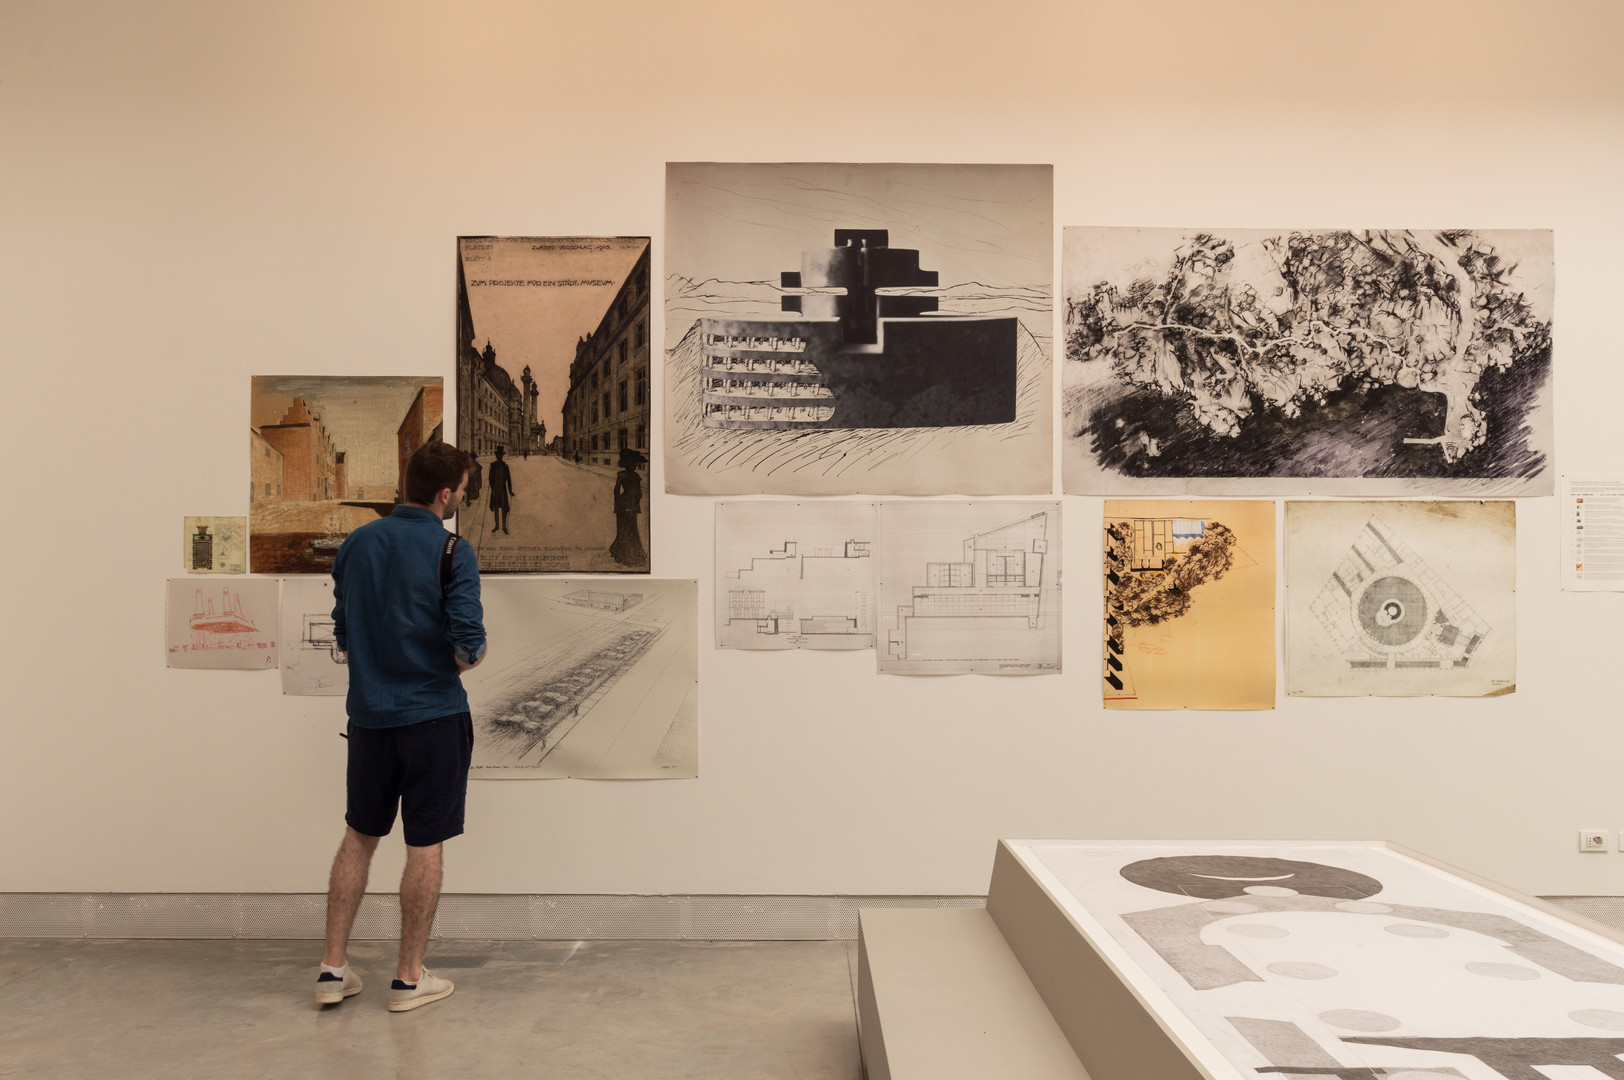 Man looking at architectural Drawings on a wall curated by Elizabeth Hatz Architects at the Venice Biennale 2018